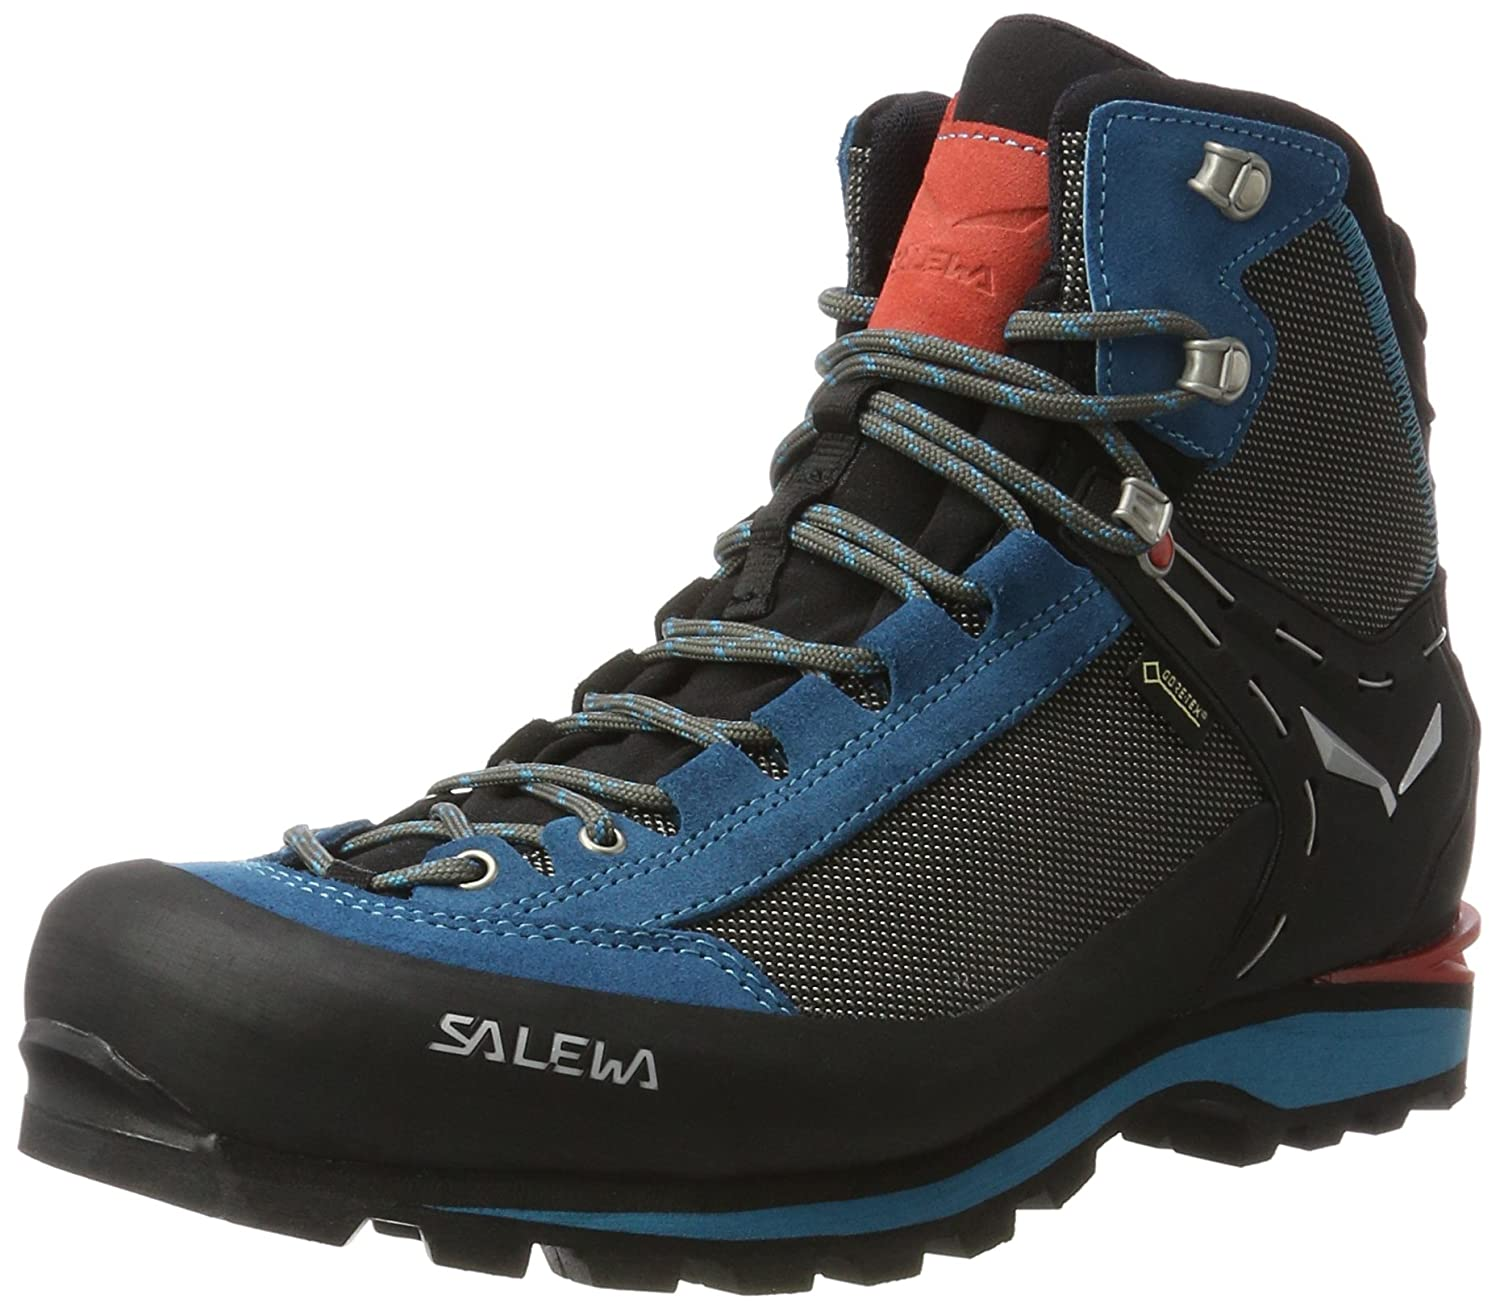 Salewa Women's Crow GTX Mountaineering Boot | Mountaineering, Alpine Climbing, Alpine Trekking | Gore-Tex Breathable Waterproofing, Crampon Compatible, Vibram Sole Black/Hot Coral 6 61329-938-6